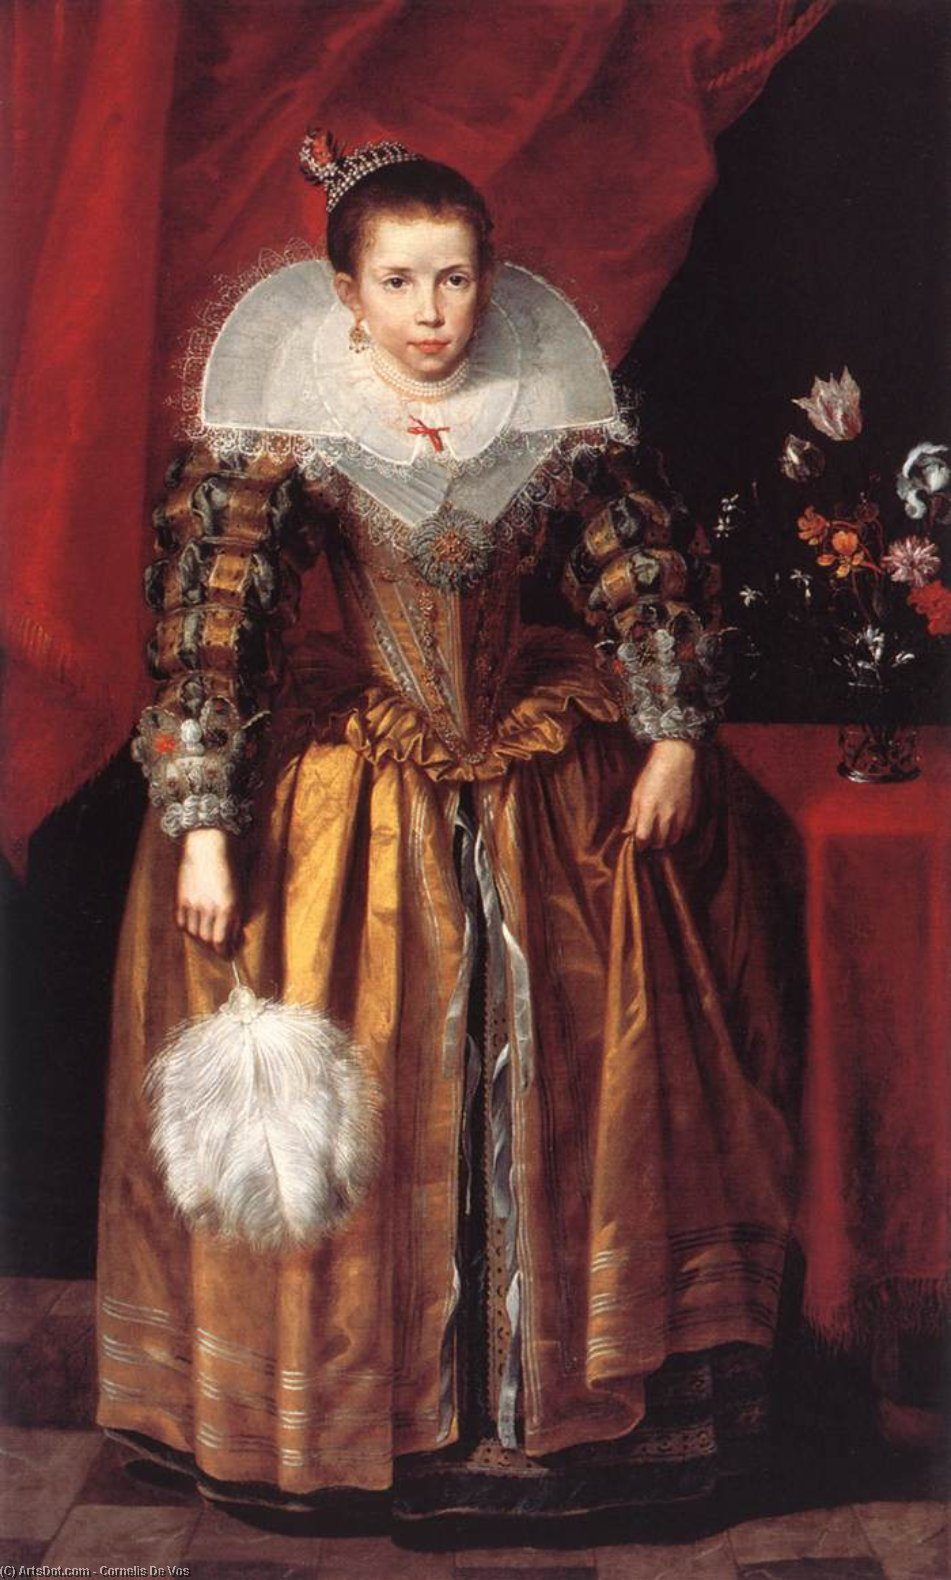 Portrait of a Girl at the Age of 10, Oil On Canvas by Cornelis De Vos (1585-1651, Belgium)